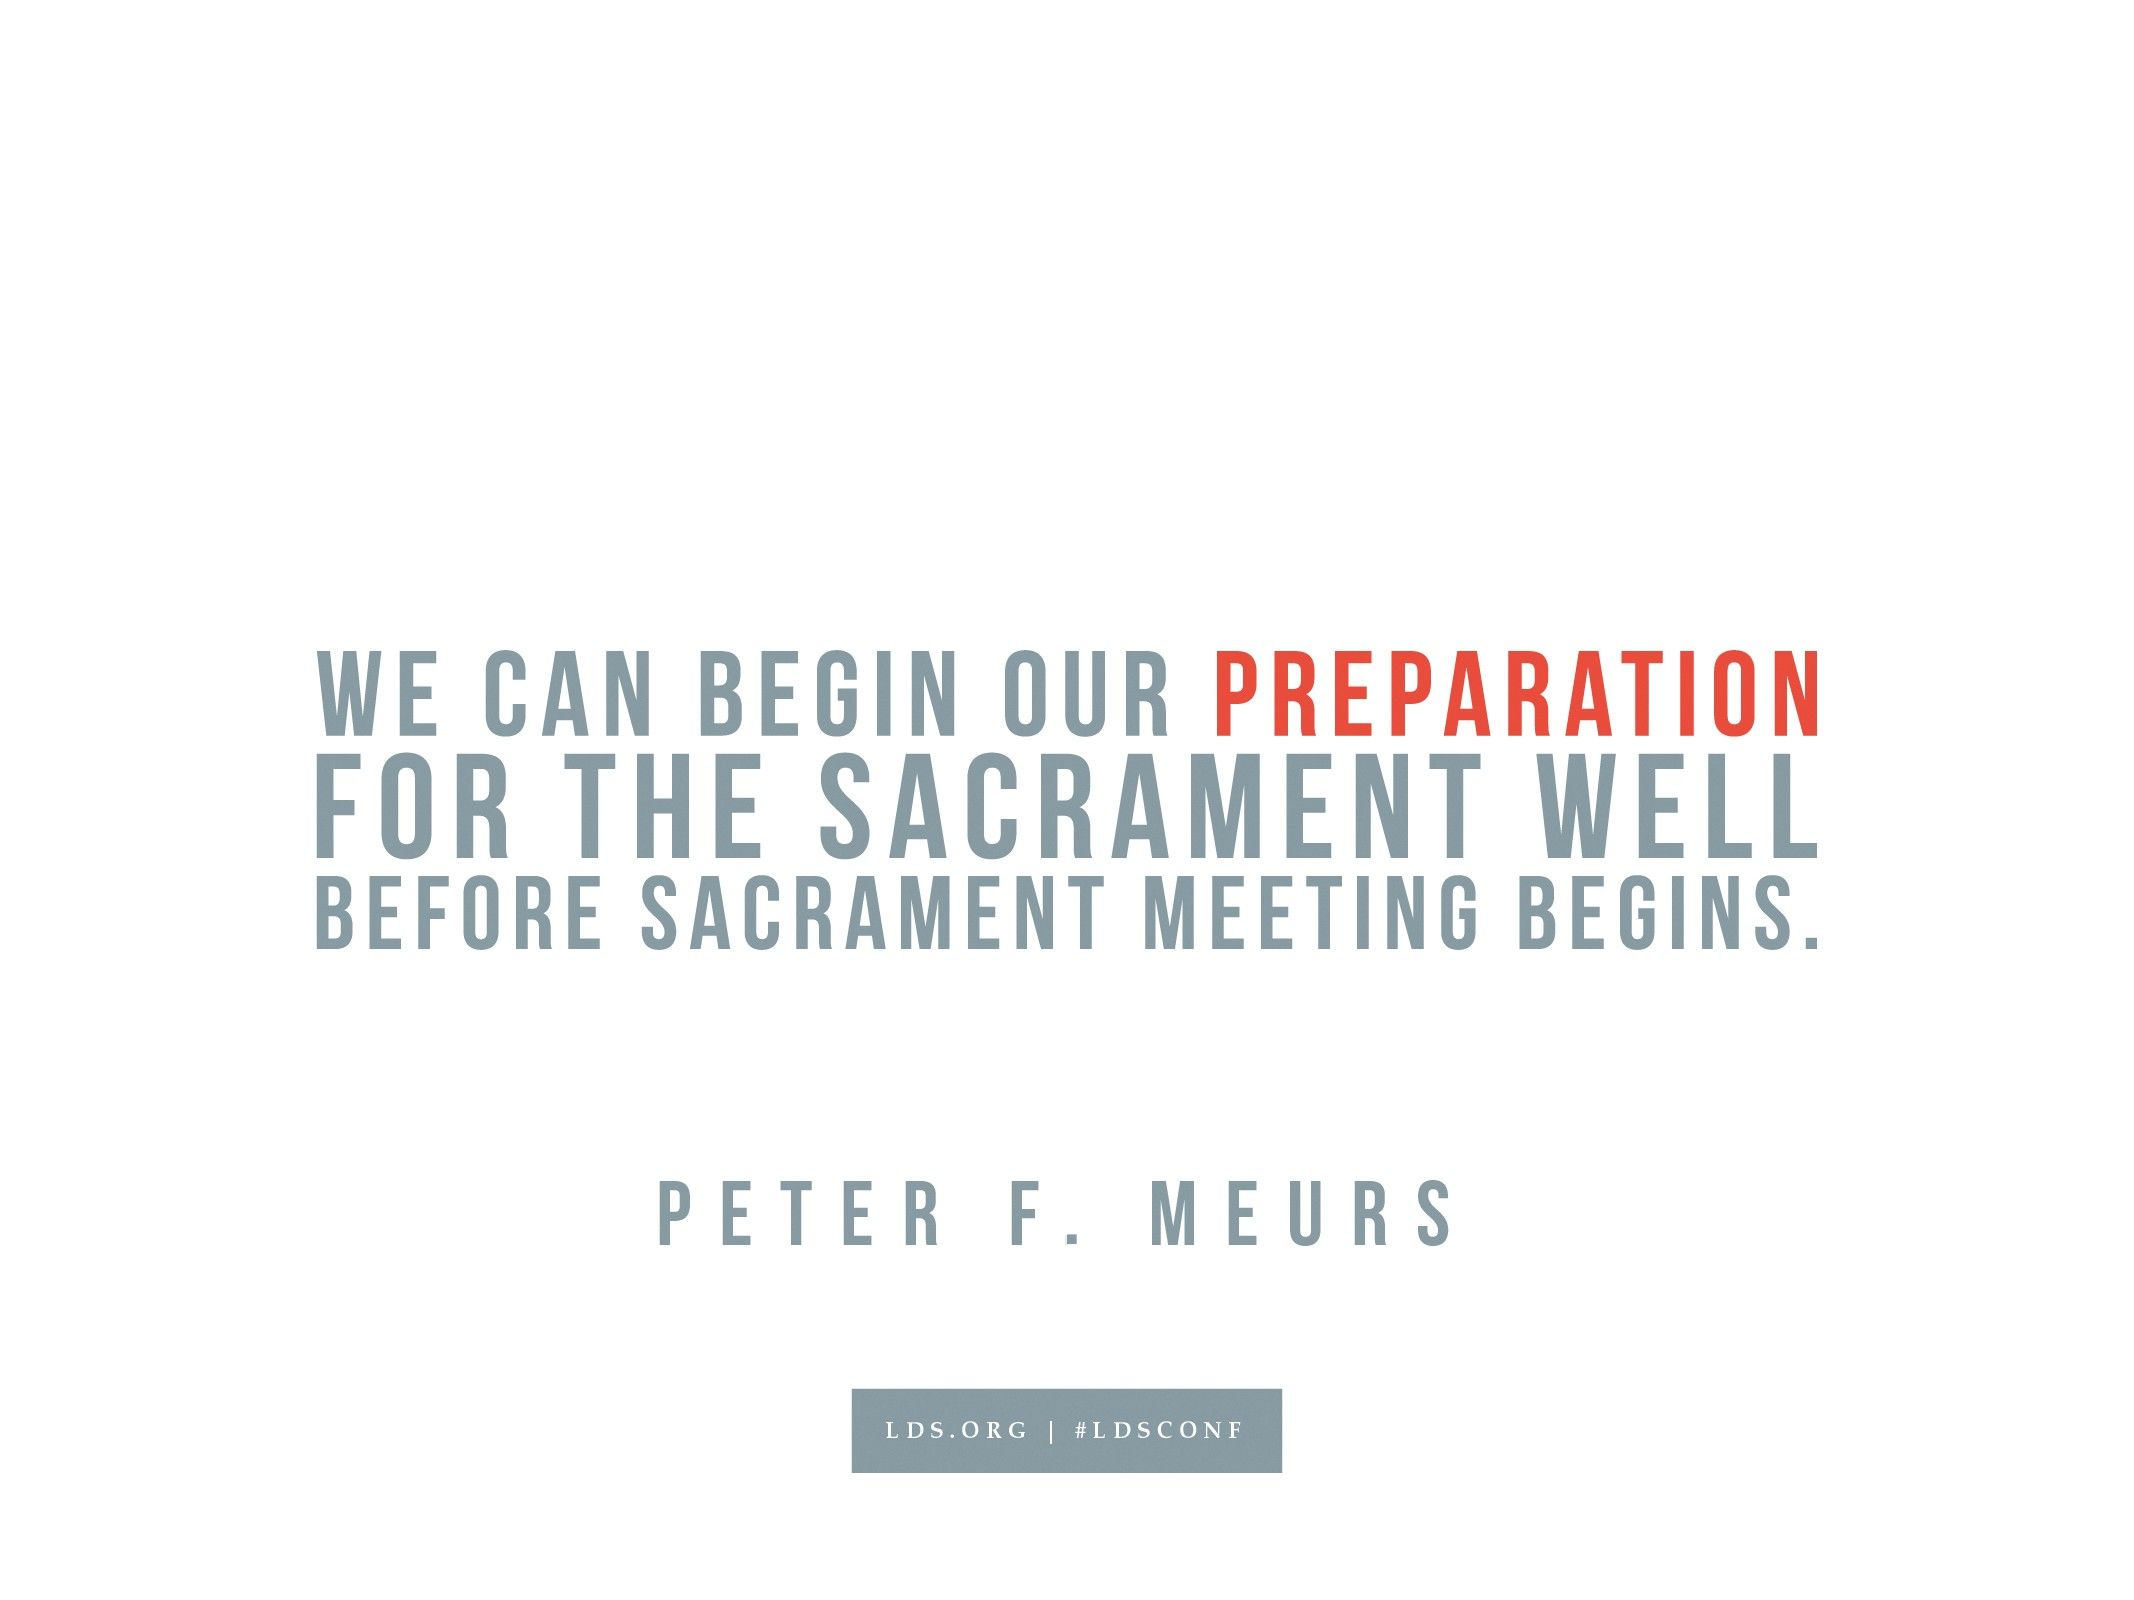 """""""We can begin our preparation for the sacrament well before sacrament meeting begins.""""—Peter F. Meurs, """"The Sacrament Can Help Us Become Holy"""""""